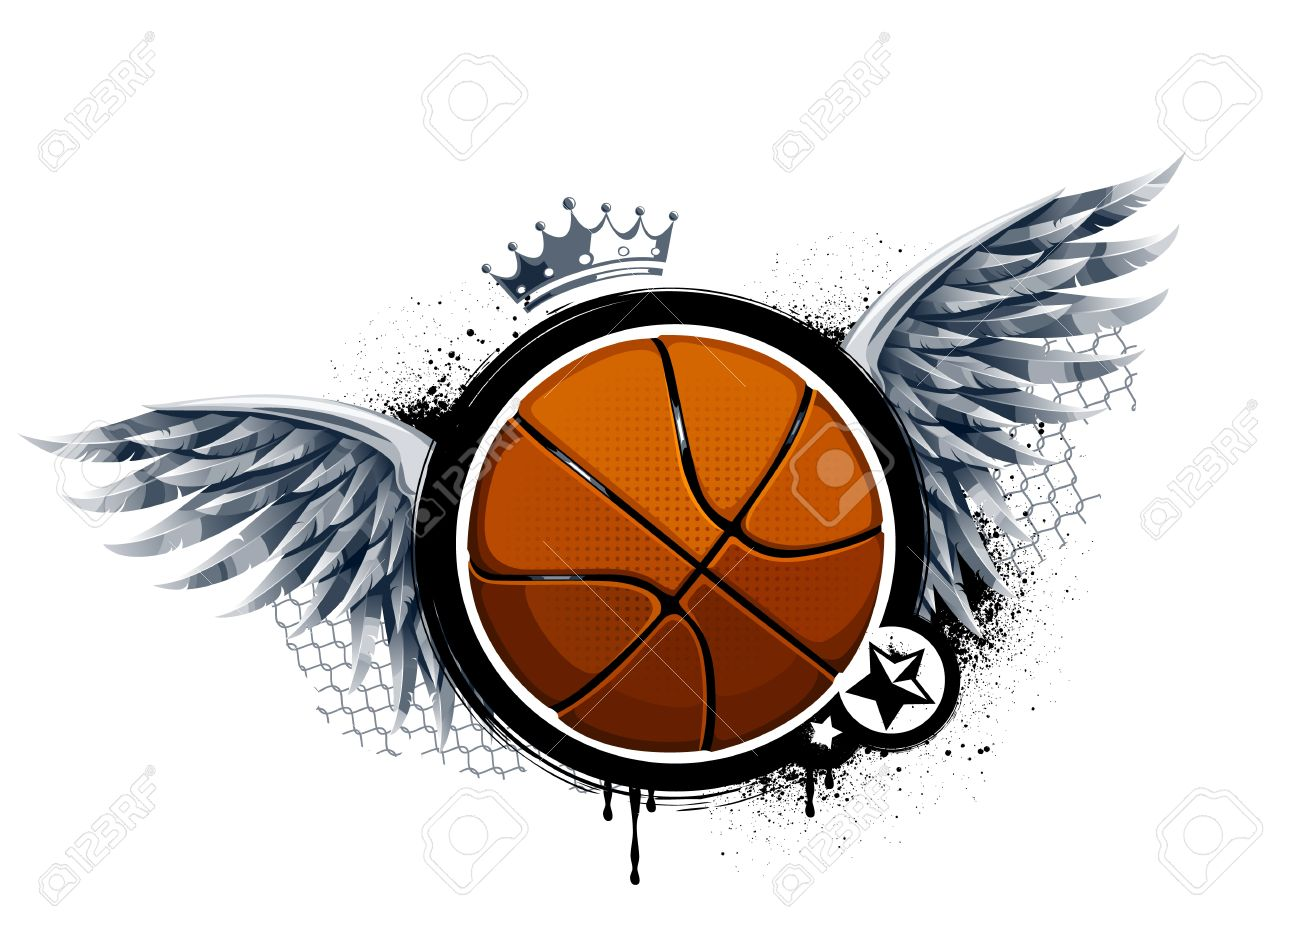 Grunge image with basketball  Vector illustration